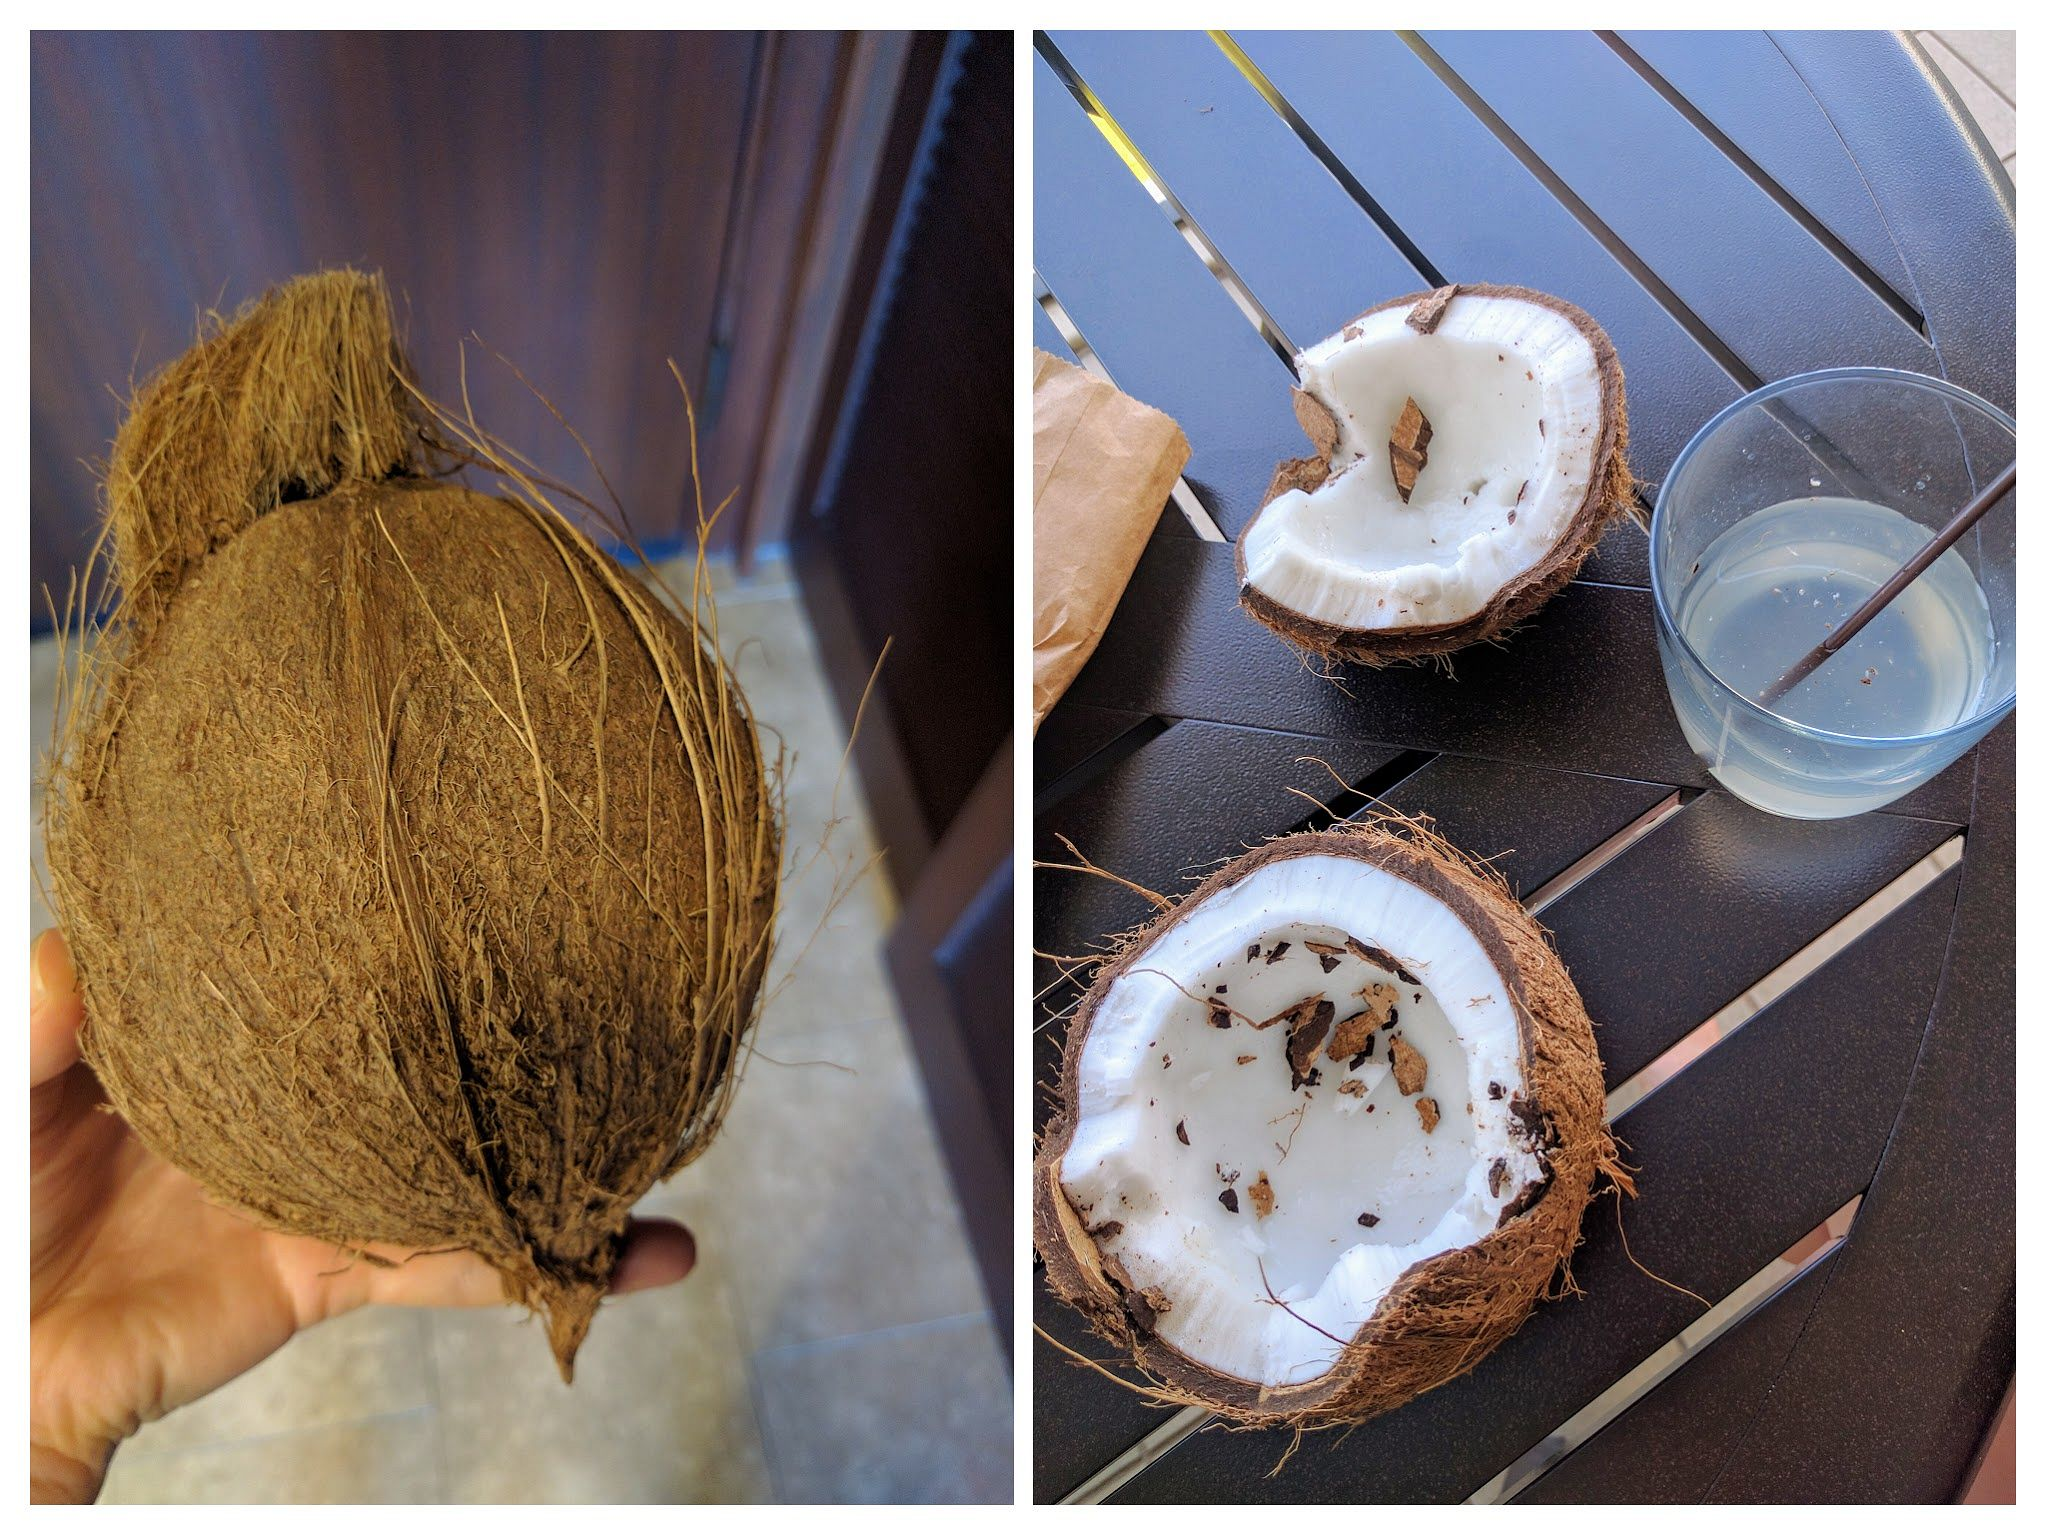 A collage of a whole coconut and an opened coconut.